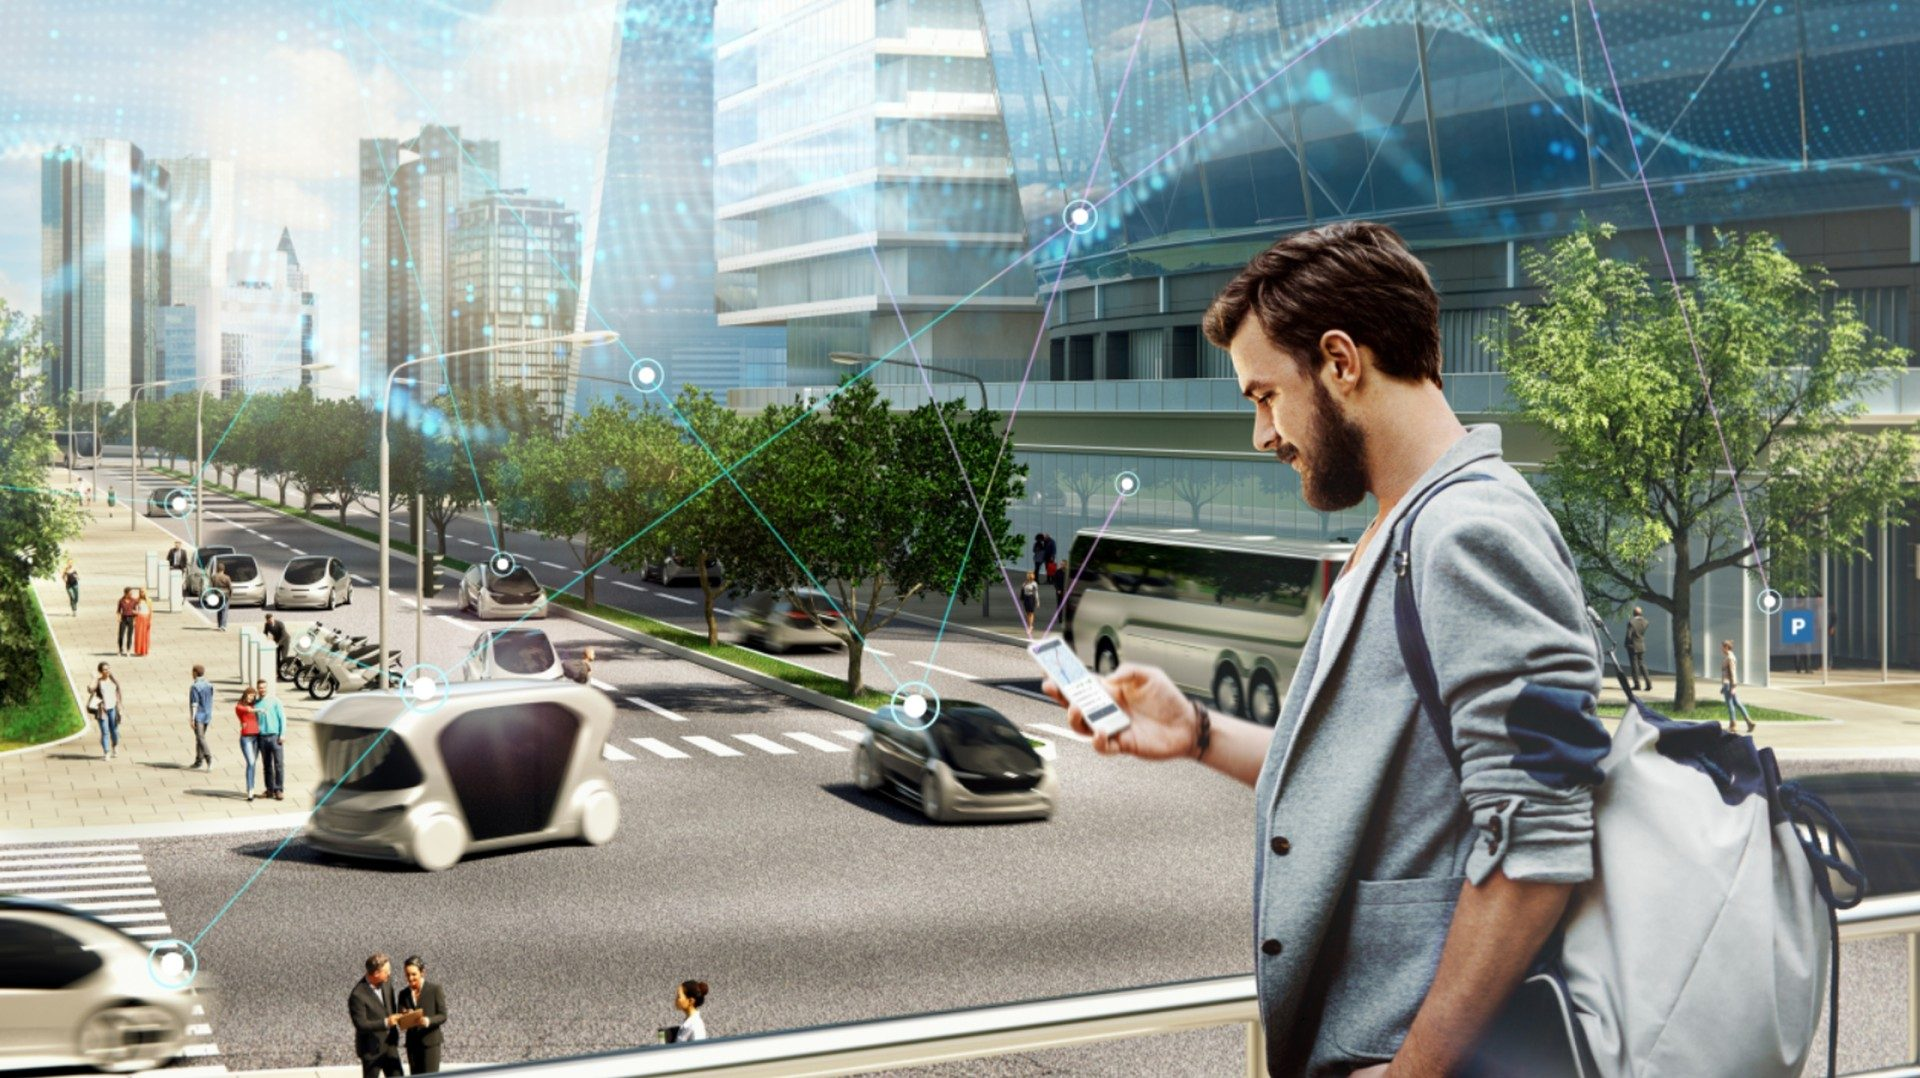 Mobility is much more than people driving their own cars